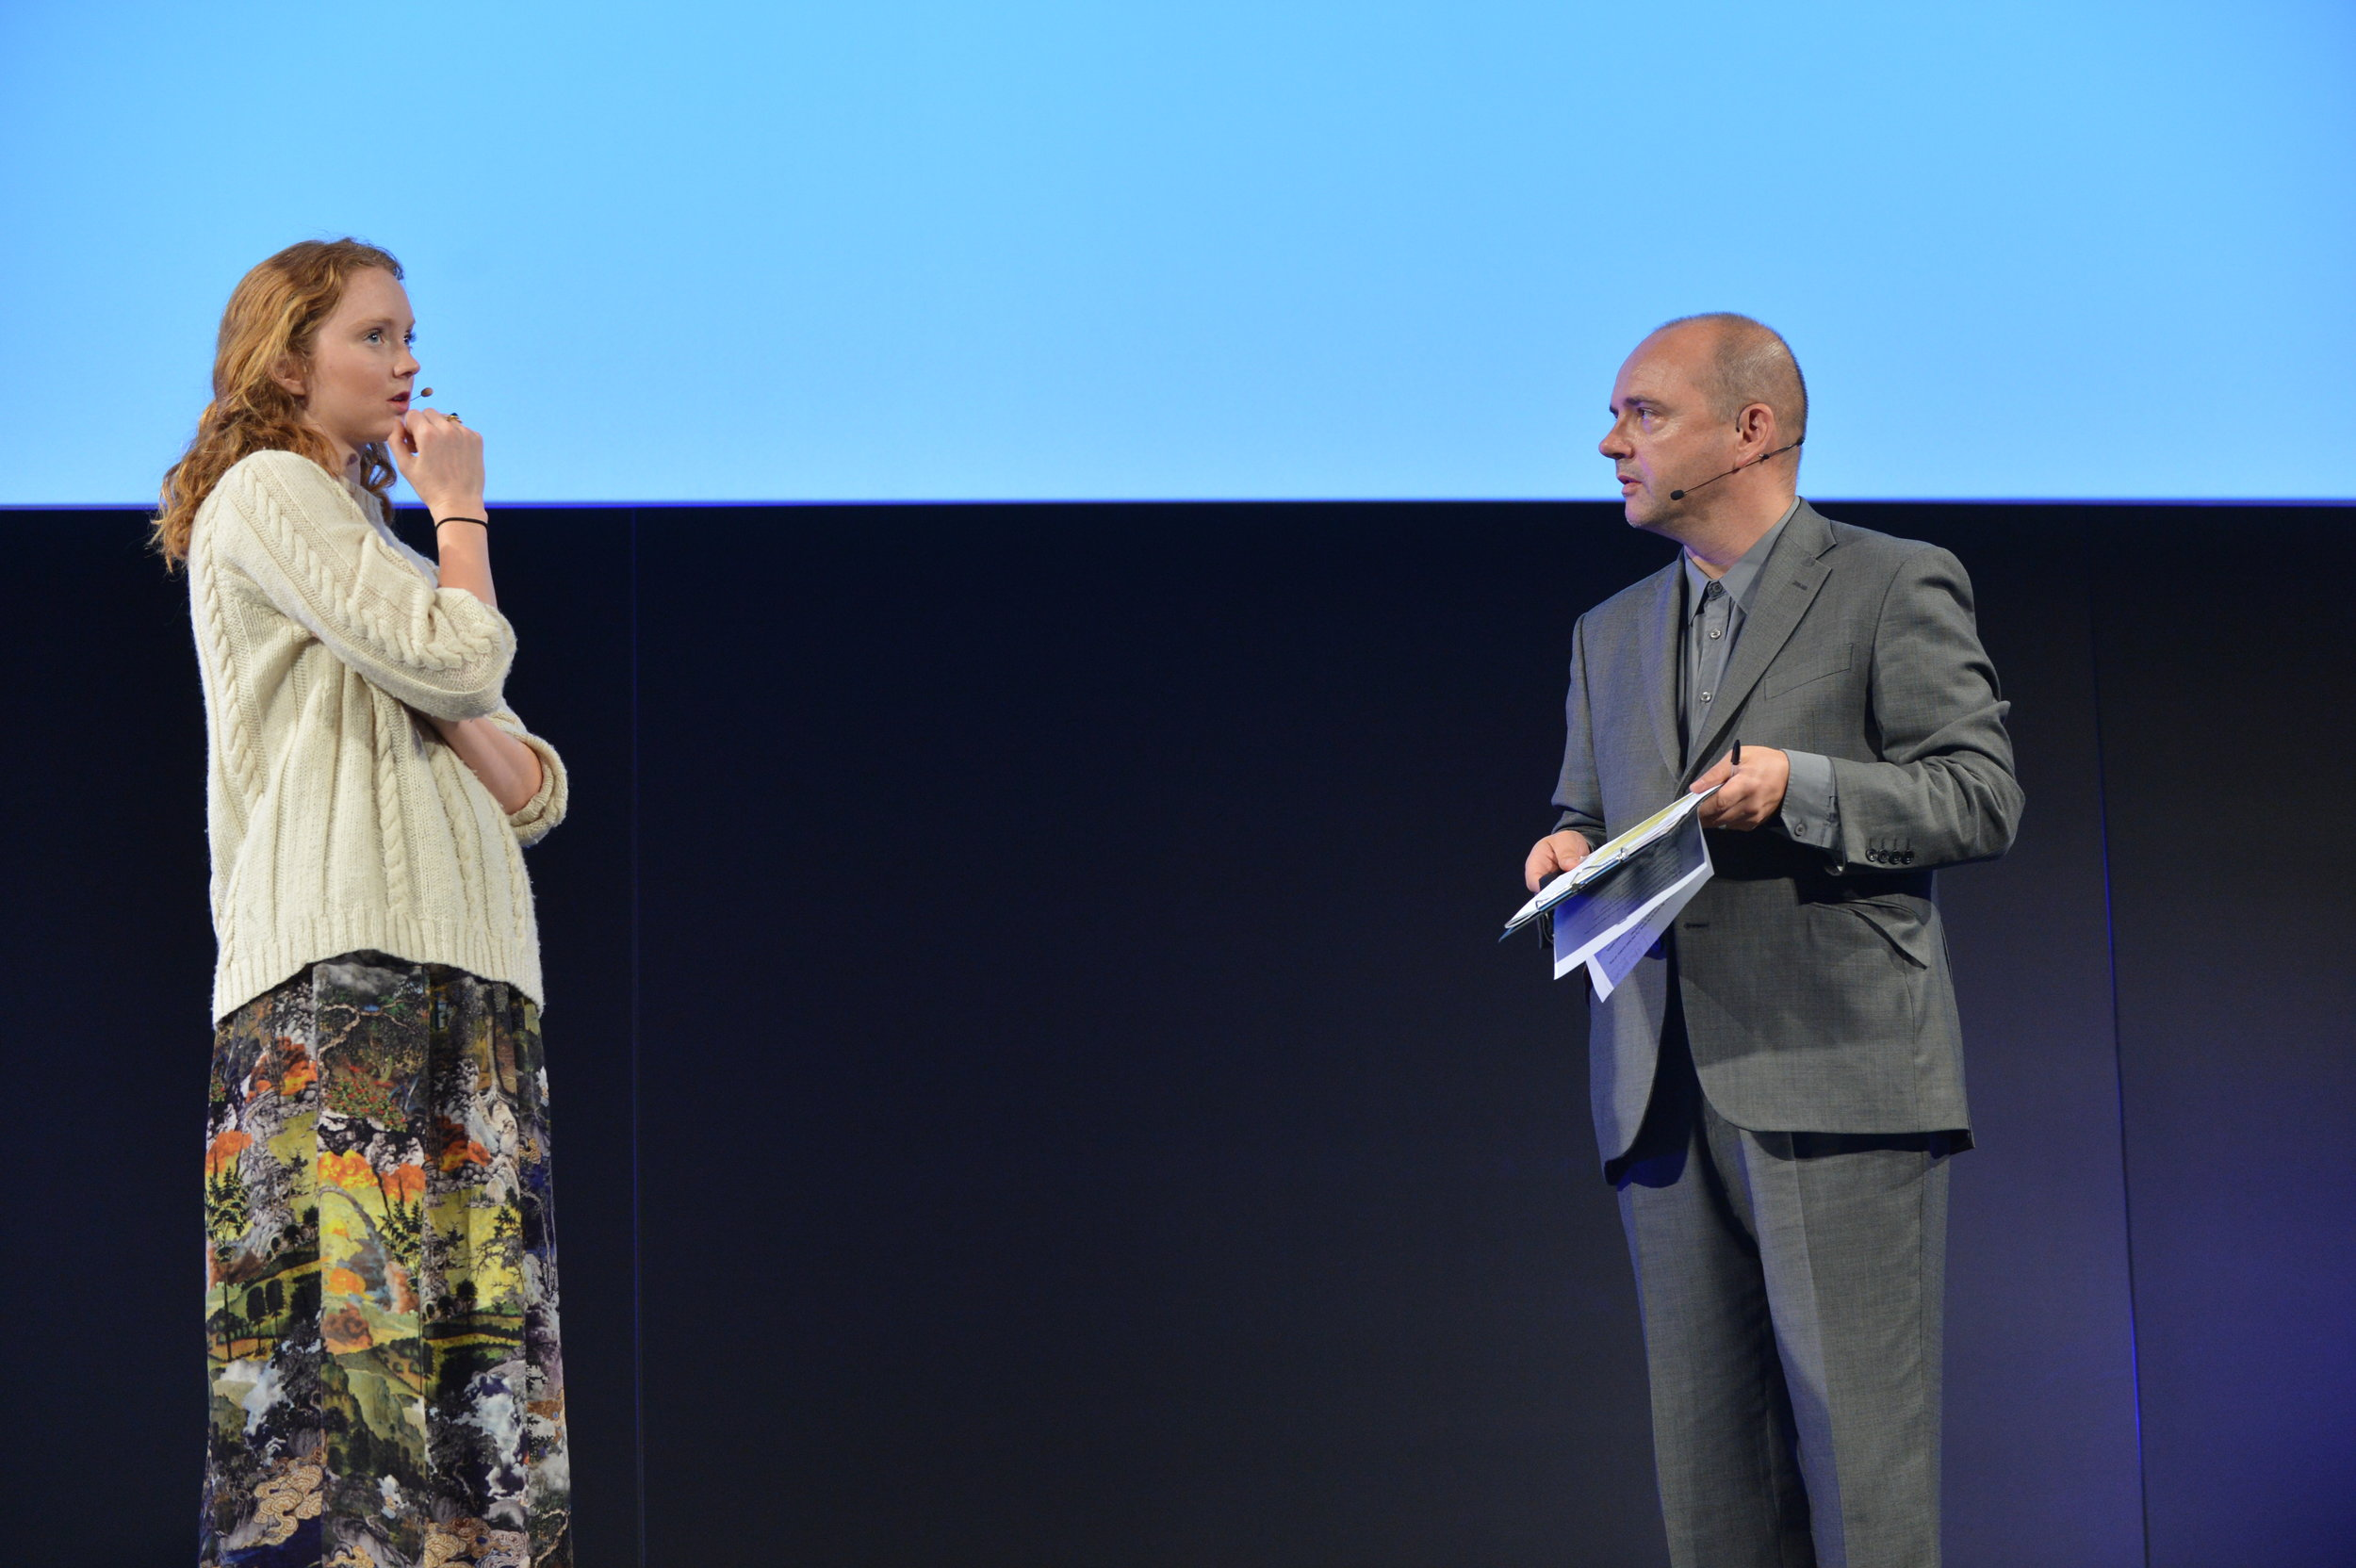 Pat hosting FutureFest in 2013, on stage with entrepreneur and actress Lily Cole